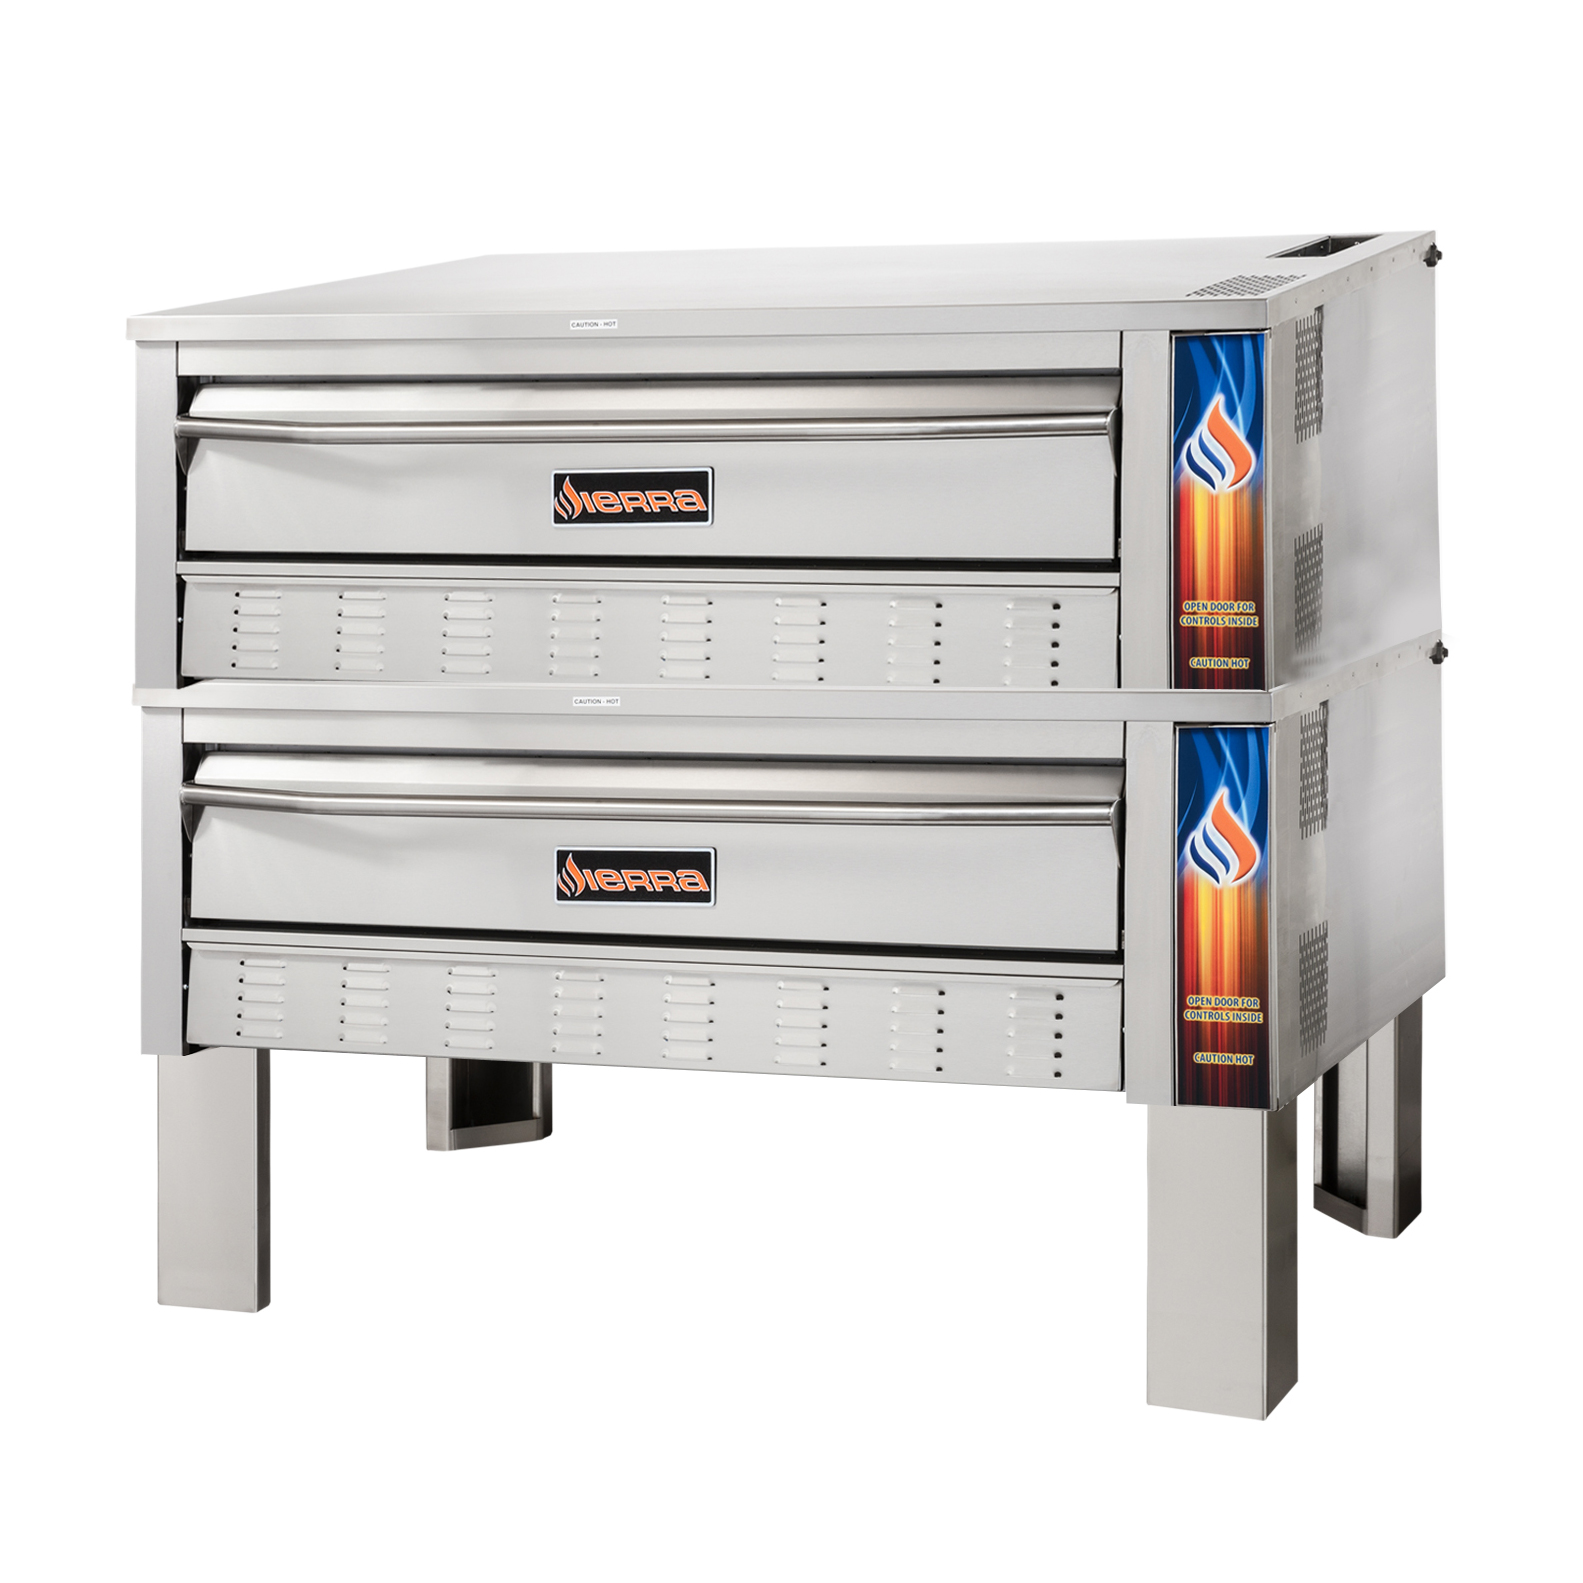 MVP SRPO-48G-2 pizza bake oven, deck-type, gas